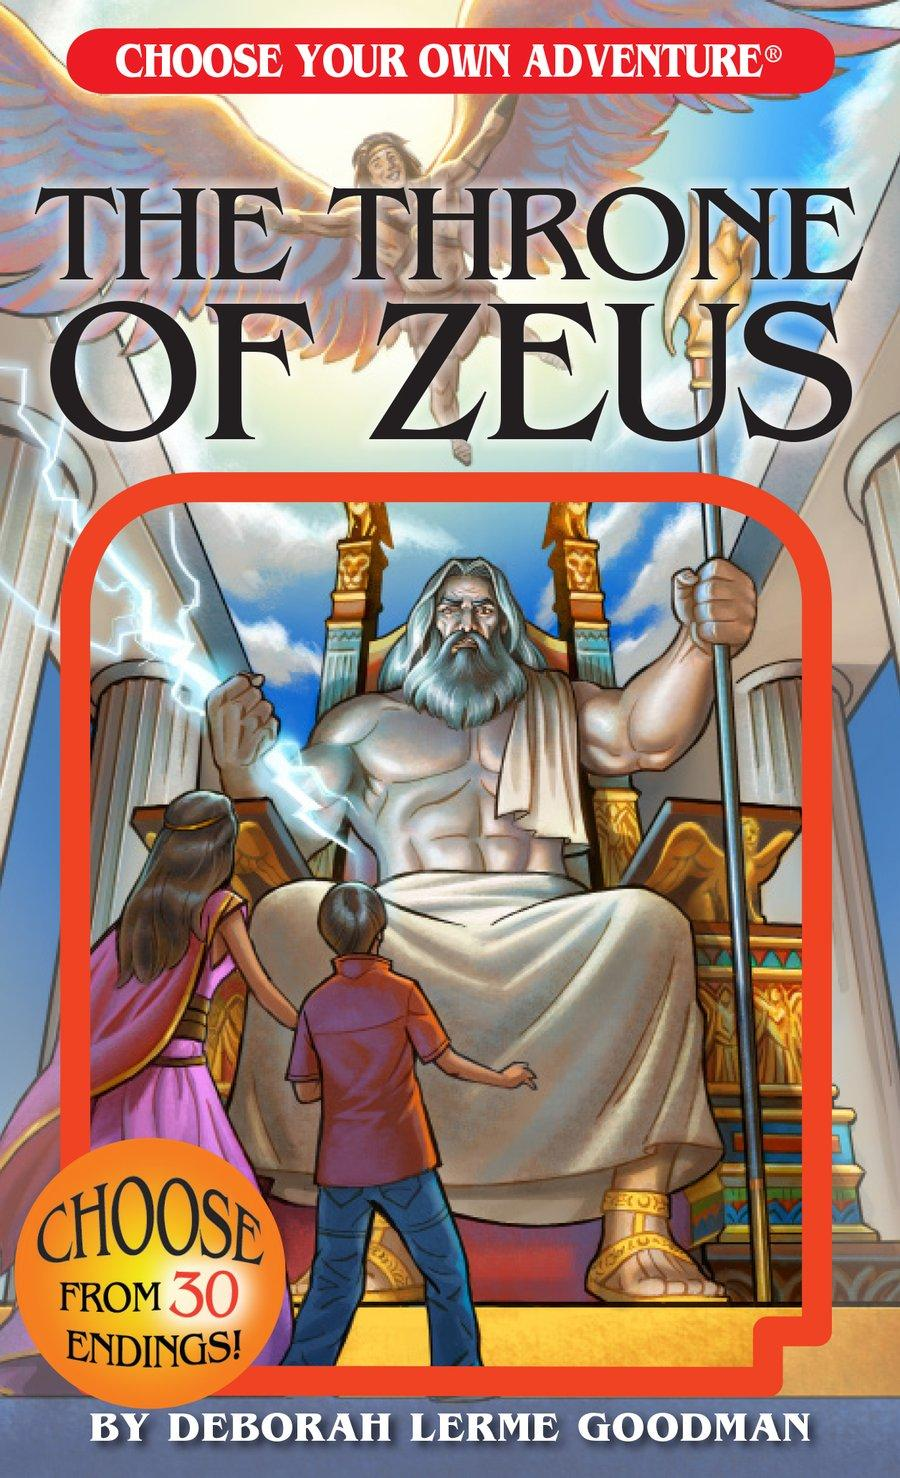 Choose Your Own Adventure: The Throne of Zeus